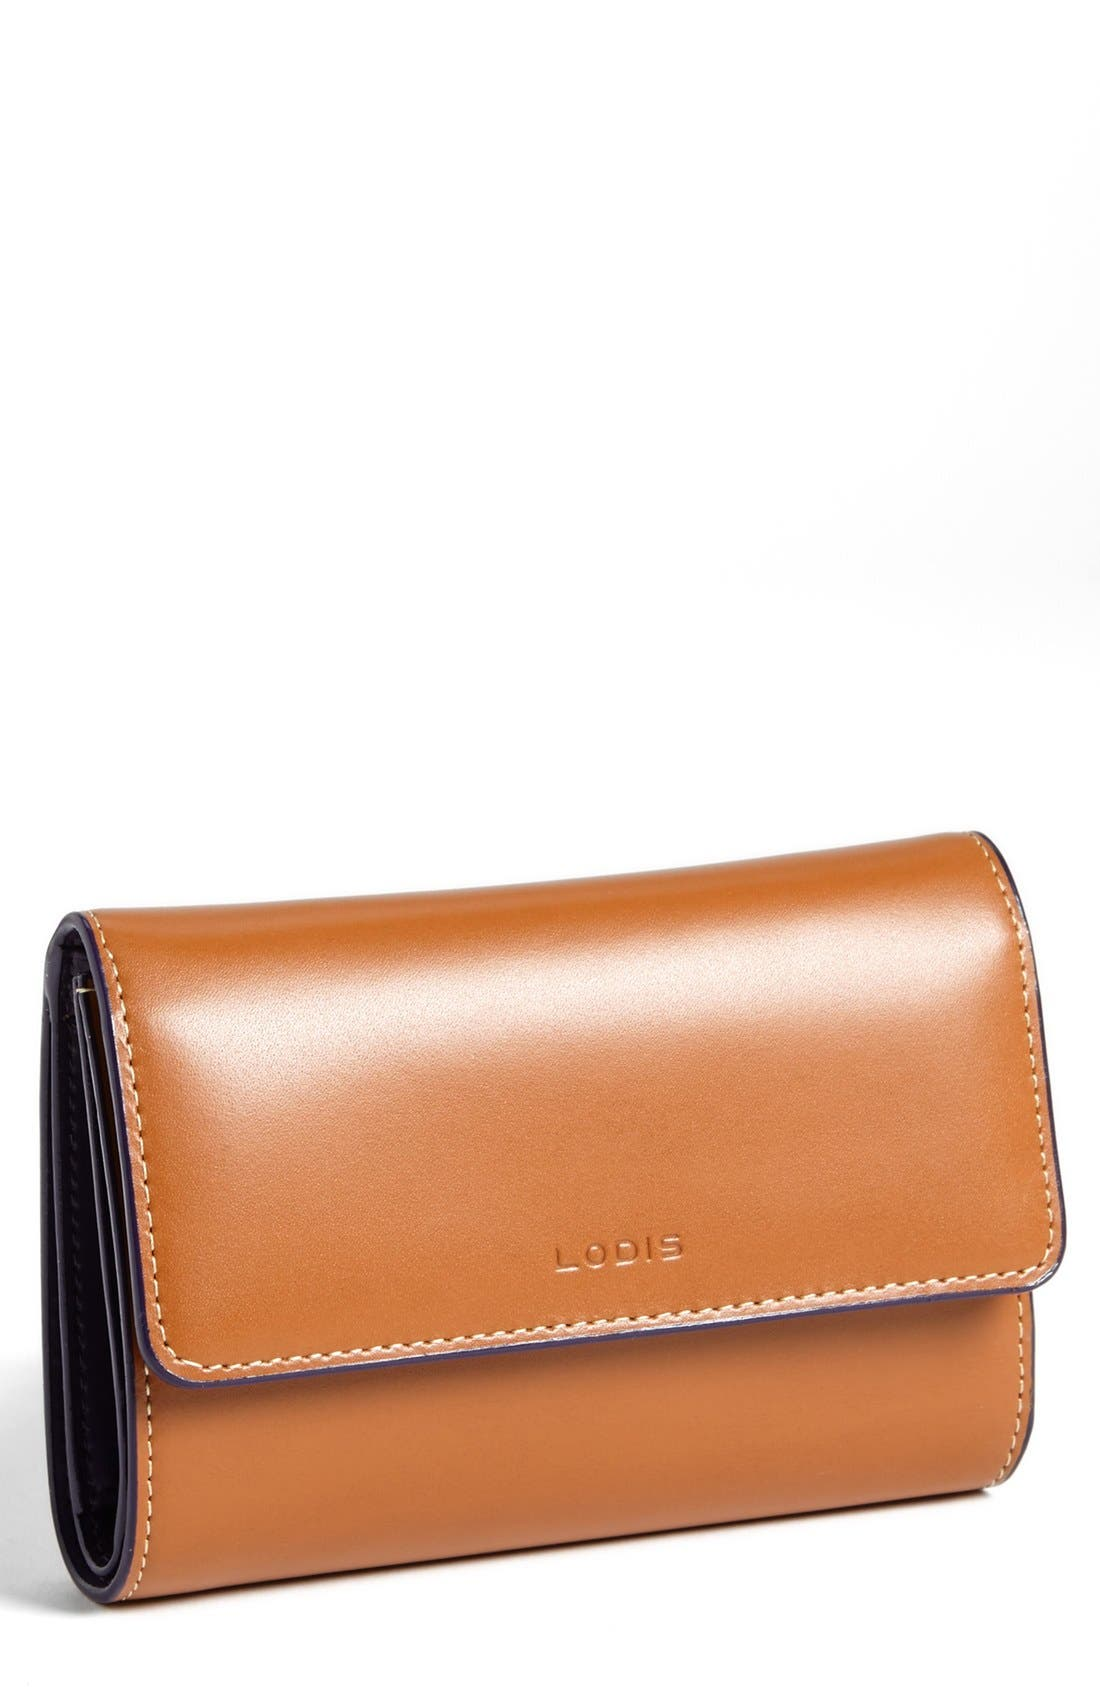 Alternate Image 1 Selected - Lodis 'Audrey' Continental Wallet